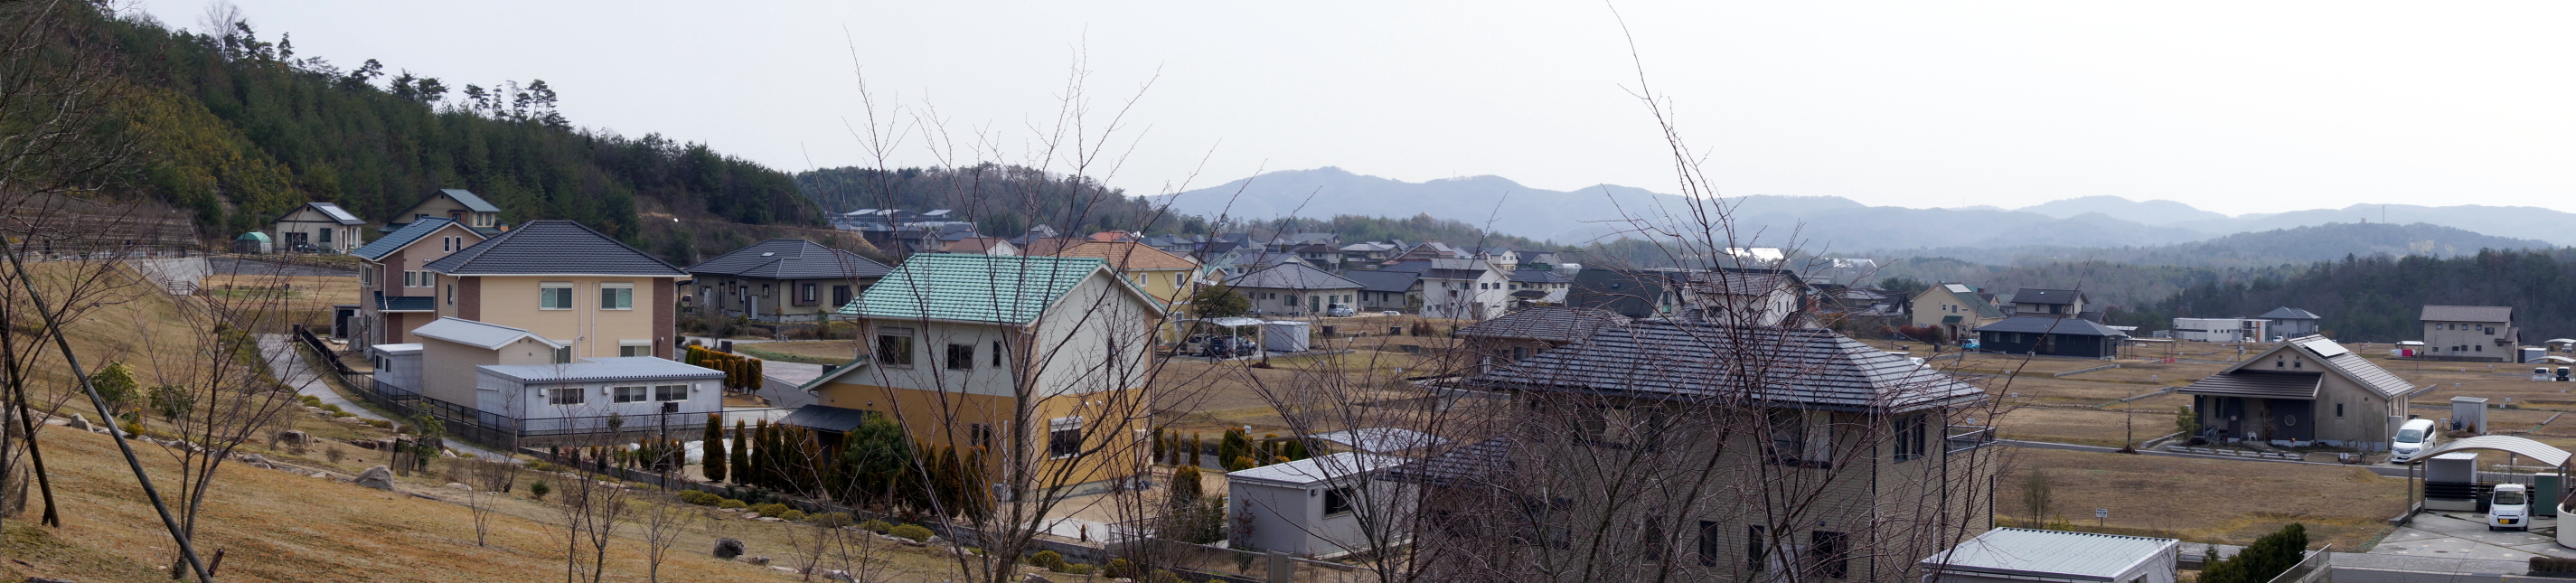 kibi-kogen-city-panorama